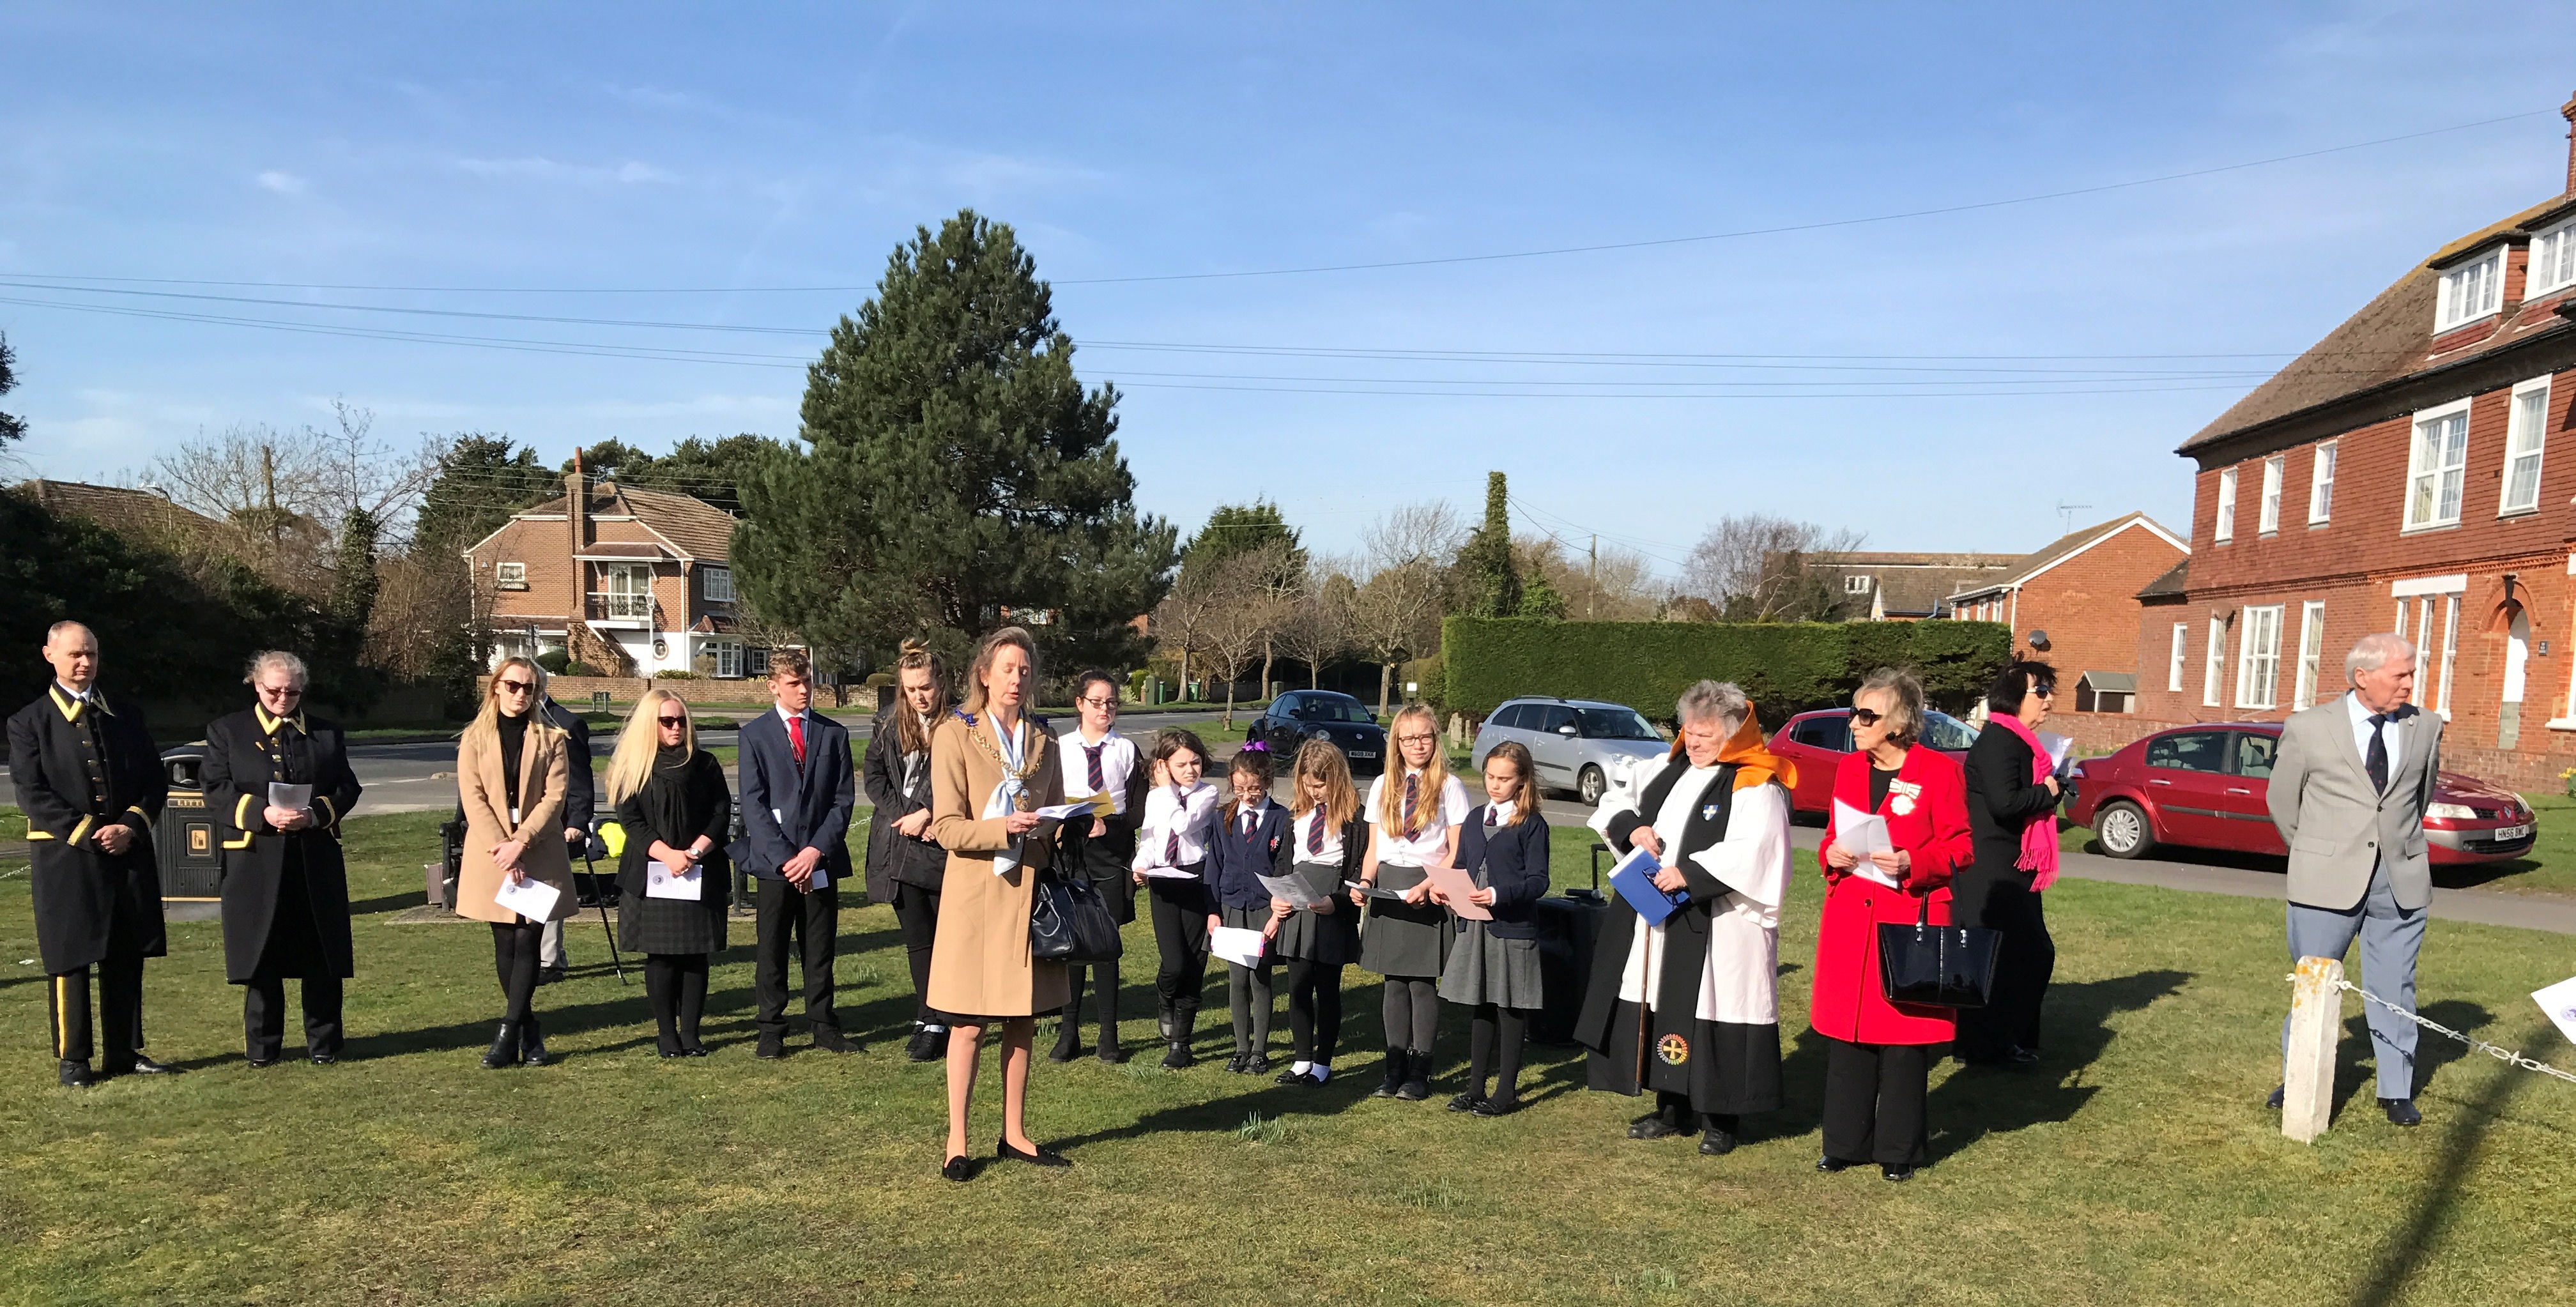 Commonwealth Day celebrated across the district